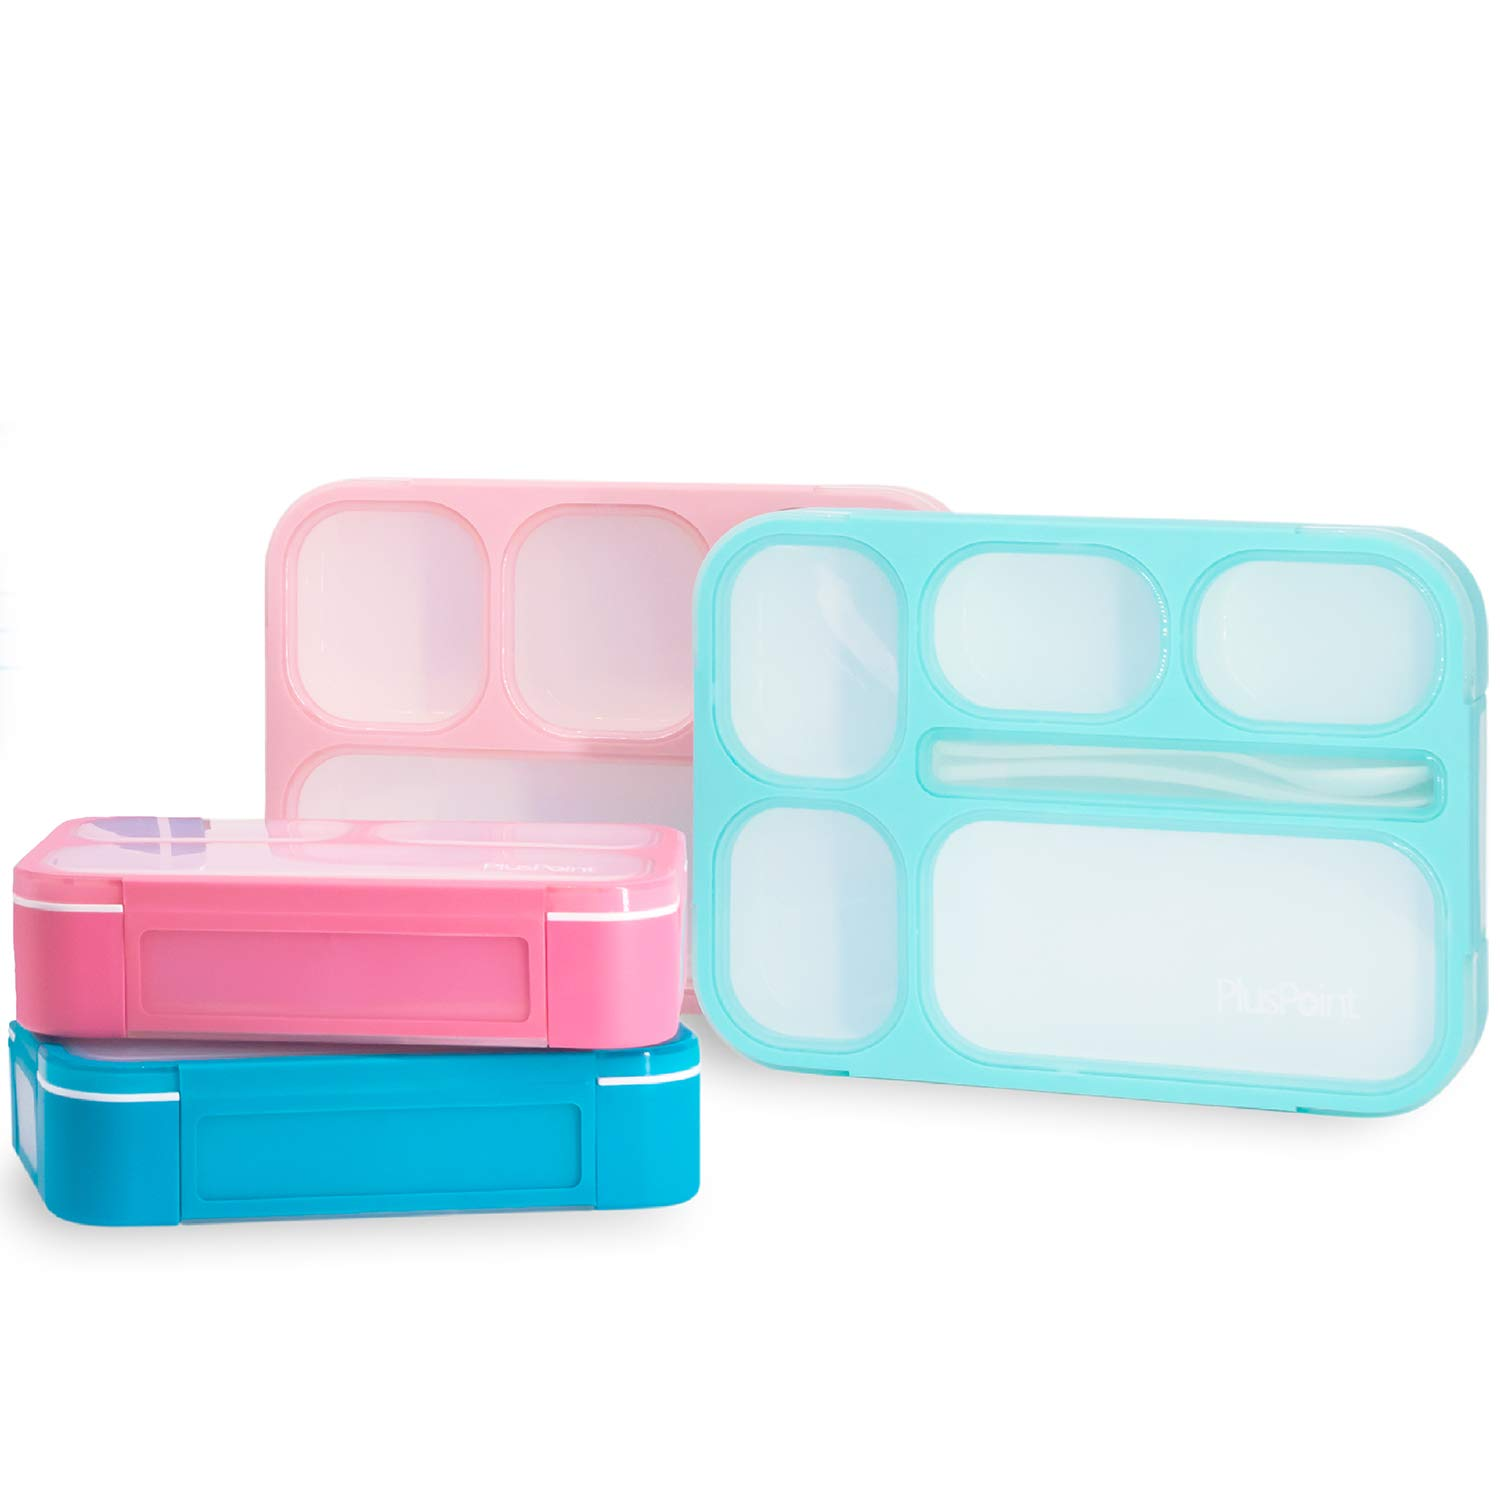 PlusPoint 4 Bento Boxes Set - Perfect Lunch Box For Kids and Adults - Meal Prep Made Easy - Portable and Lightweight -Leak-proof and Durable - Microwave and Dishwasher Safe by PlusPoint